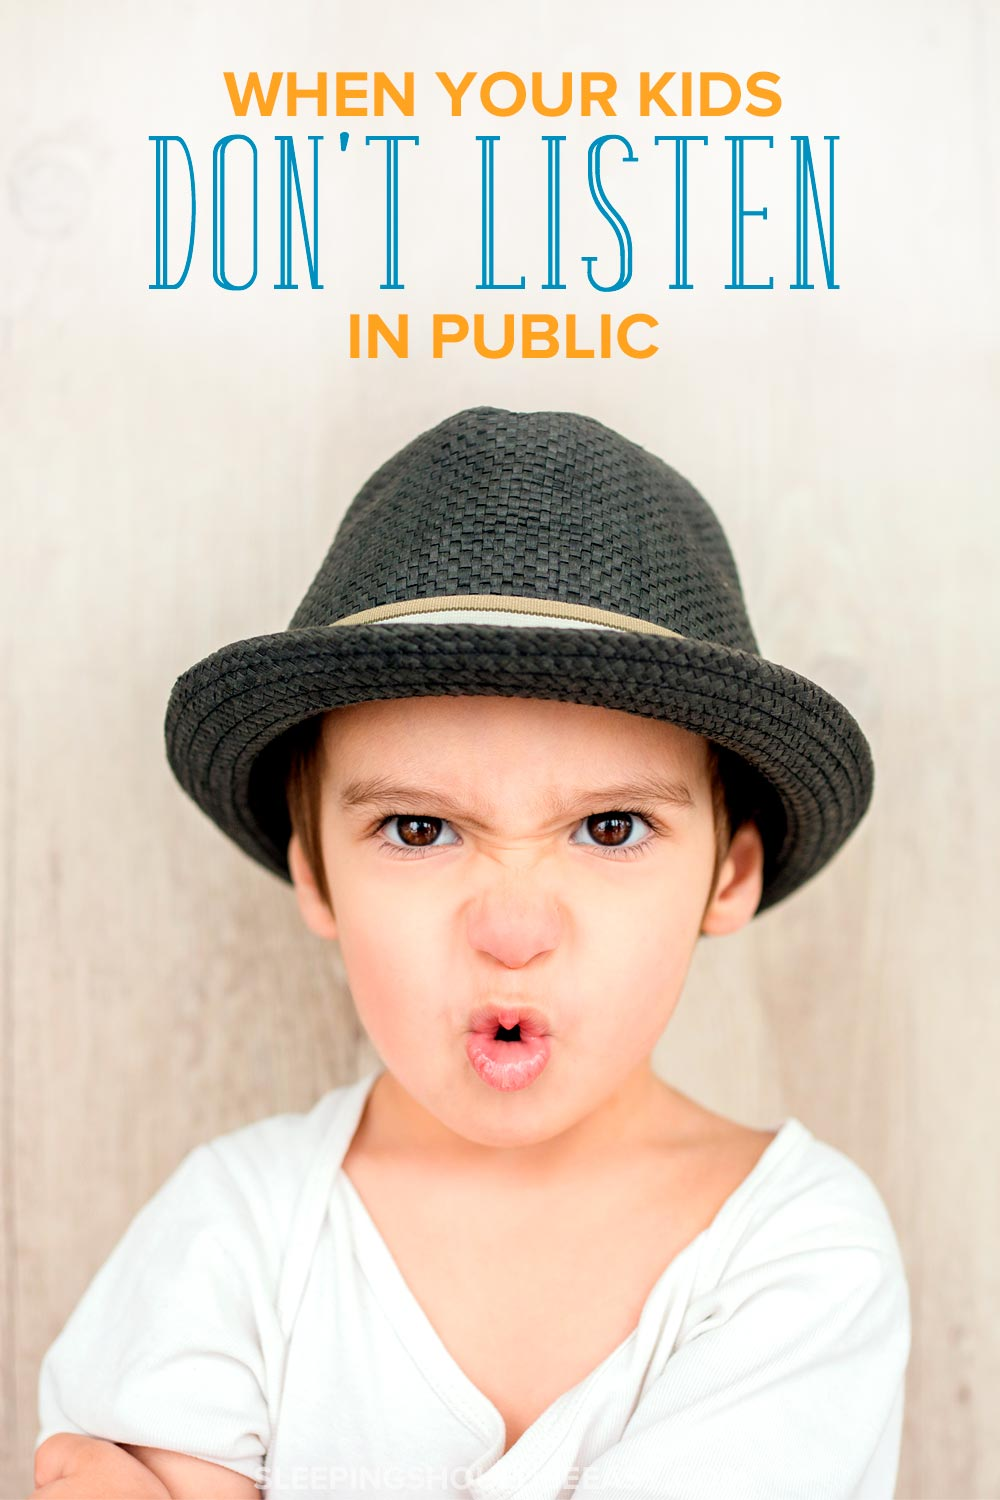 Do you spend every family outing managing your misbehaving kids? Learn how to get your children to listen in public so you can enjoy your time together.